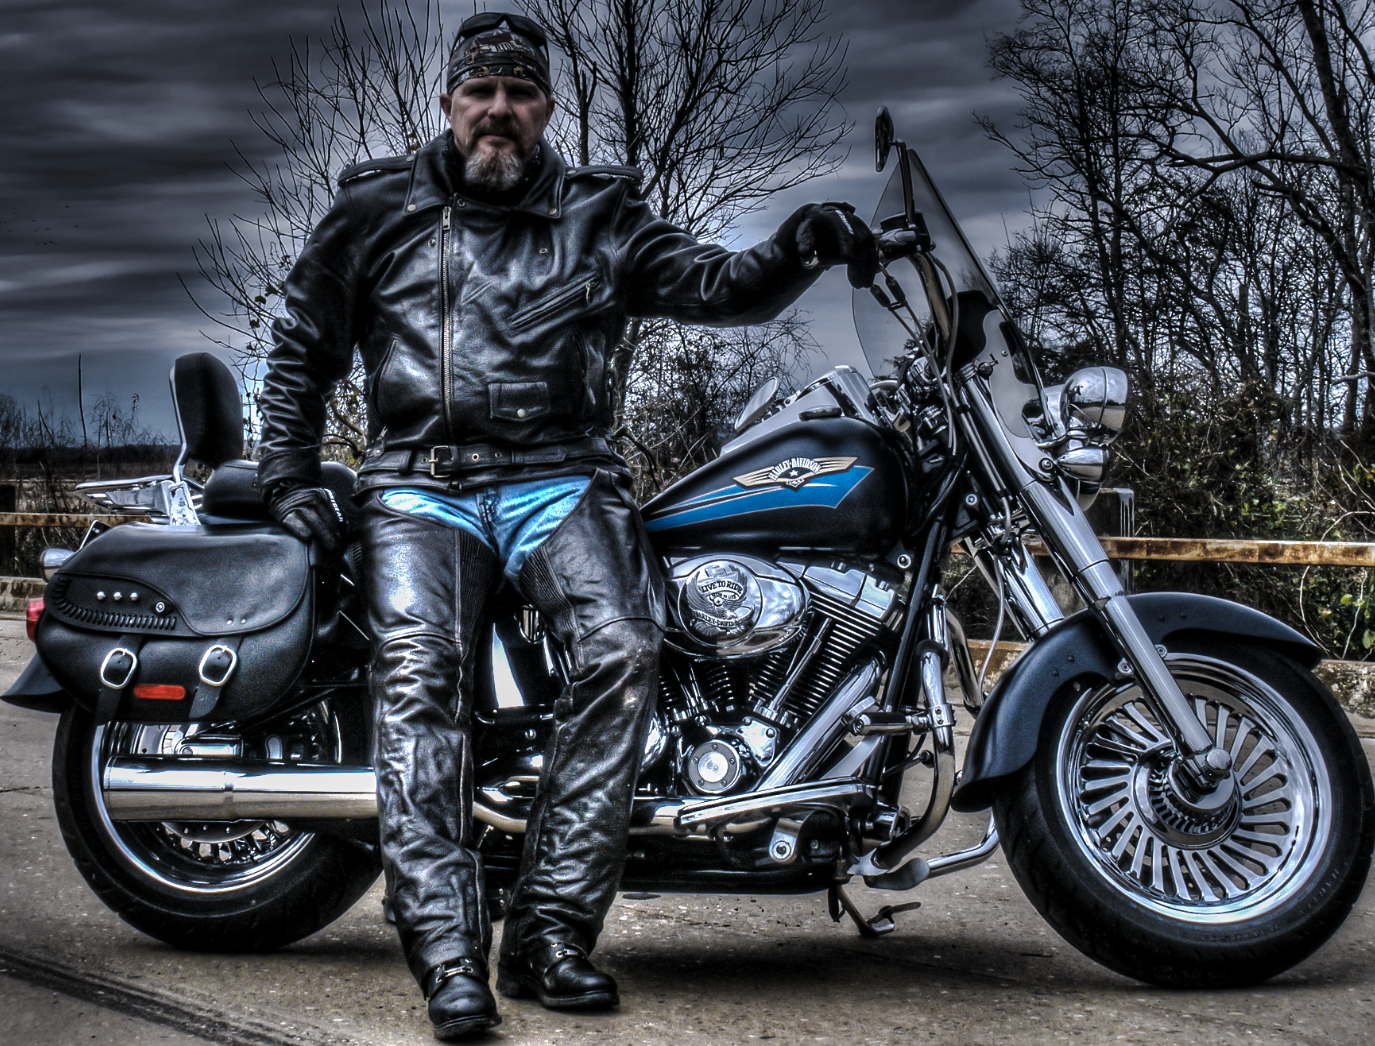 641f0603f Harley Biker HDR portrait by Roger Younce Photography | Photography ...